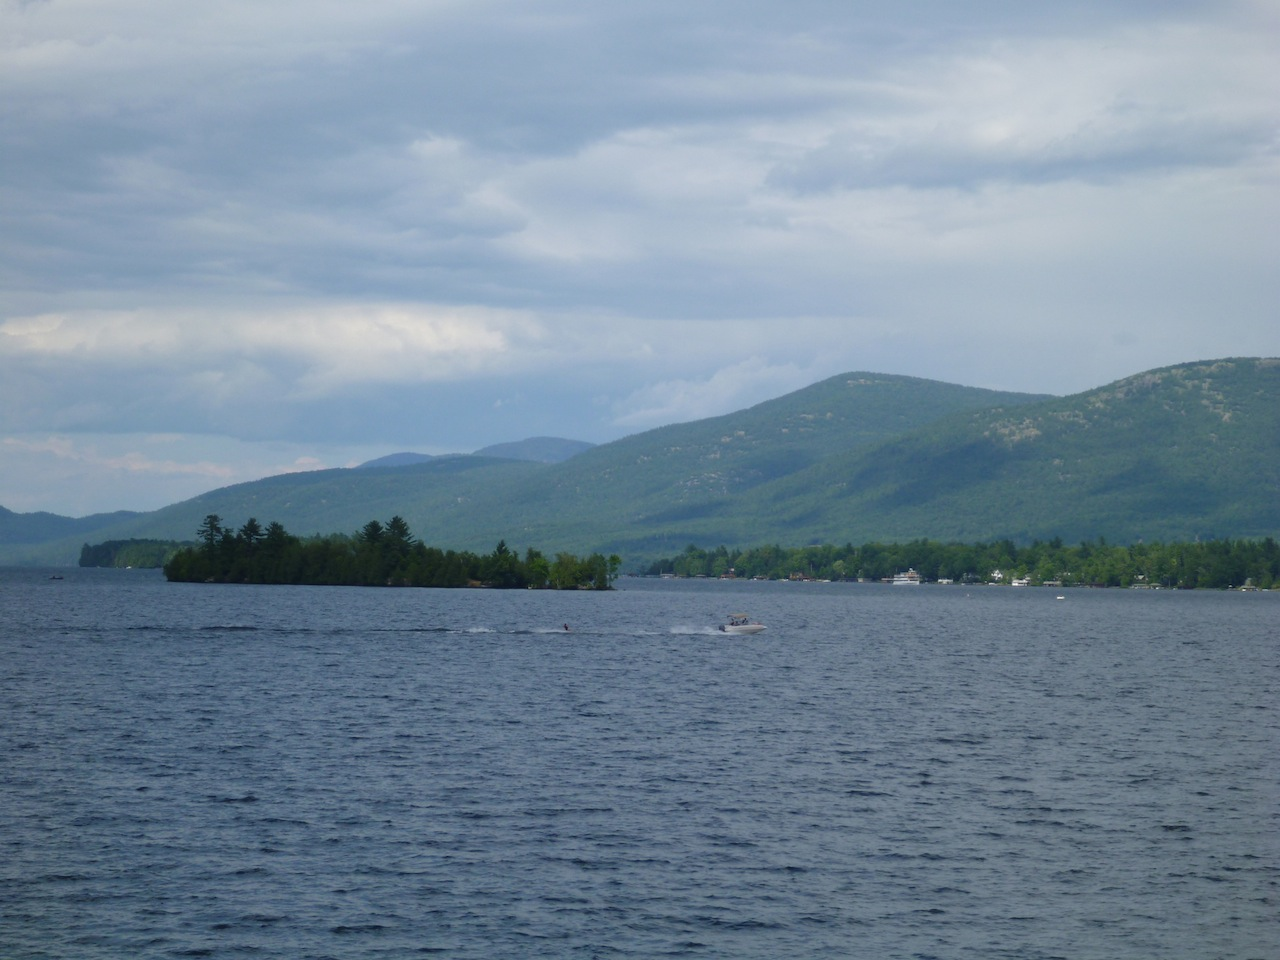 A View Of The Adirondack Mountains From The Boat